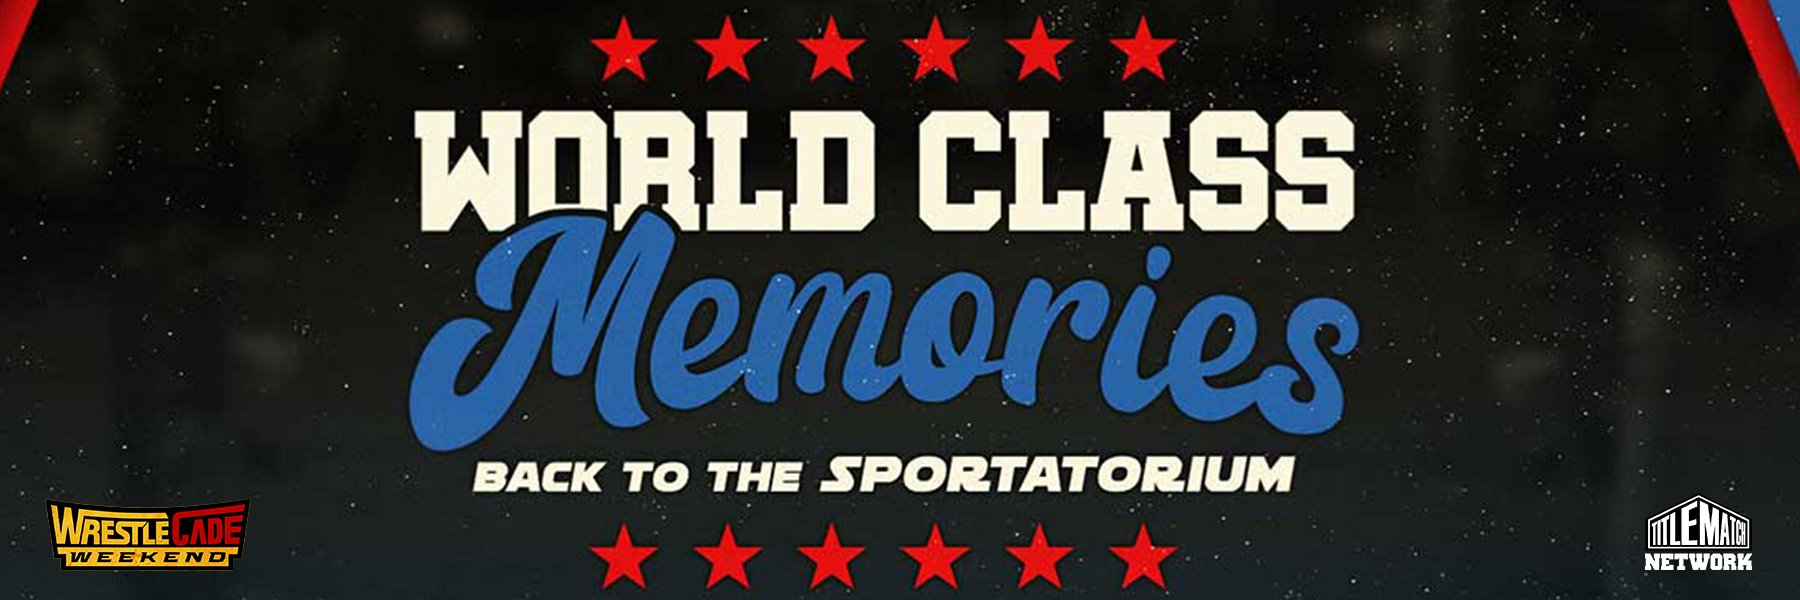 WCCW: World Classic Championship Wrestling - Back to the Sportatorium!